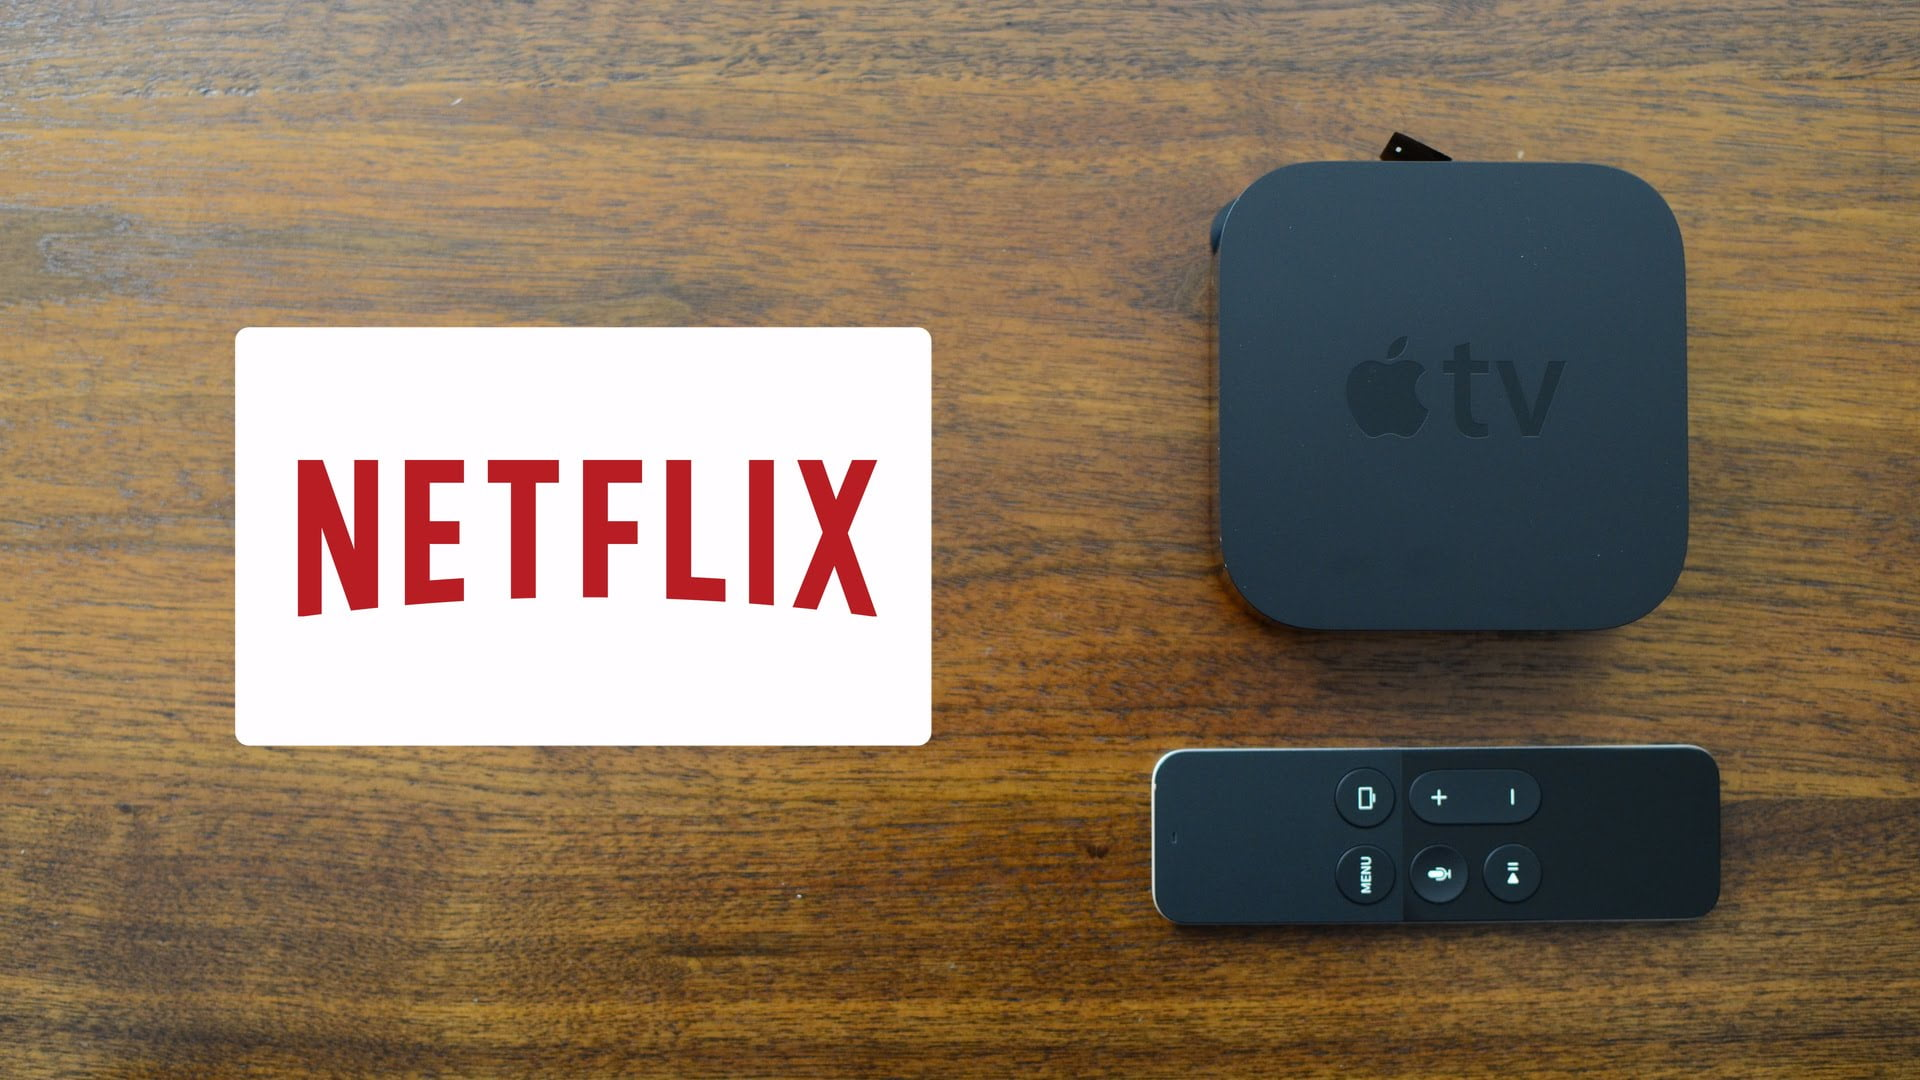 Netflix-Apple Tv 4